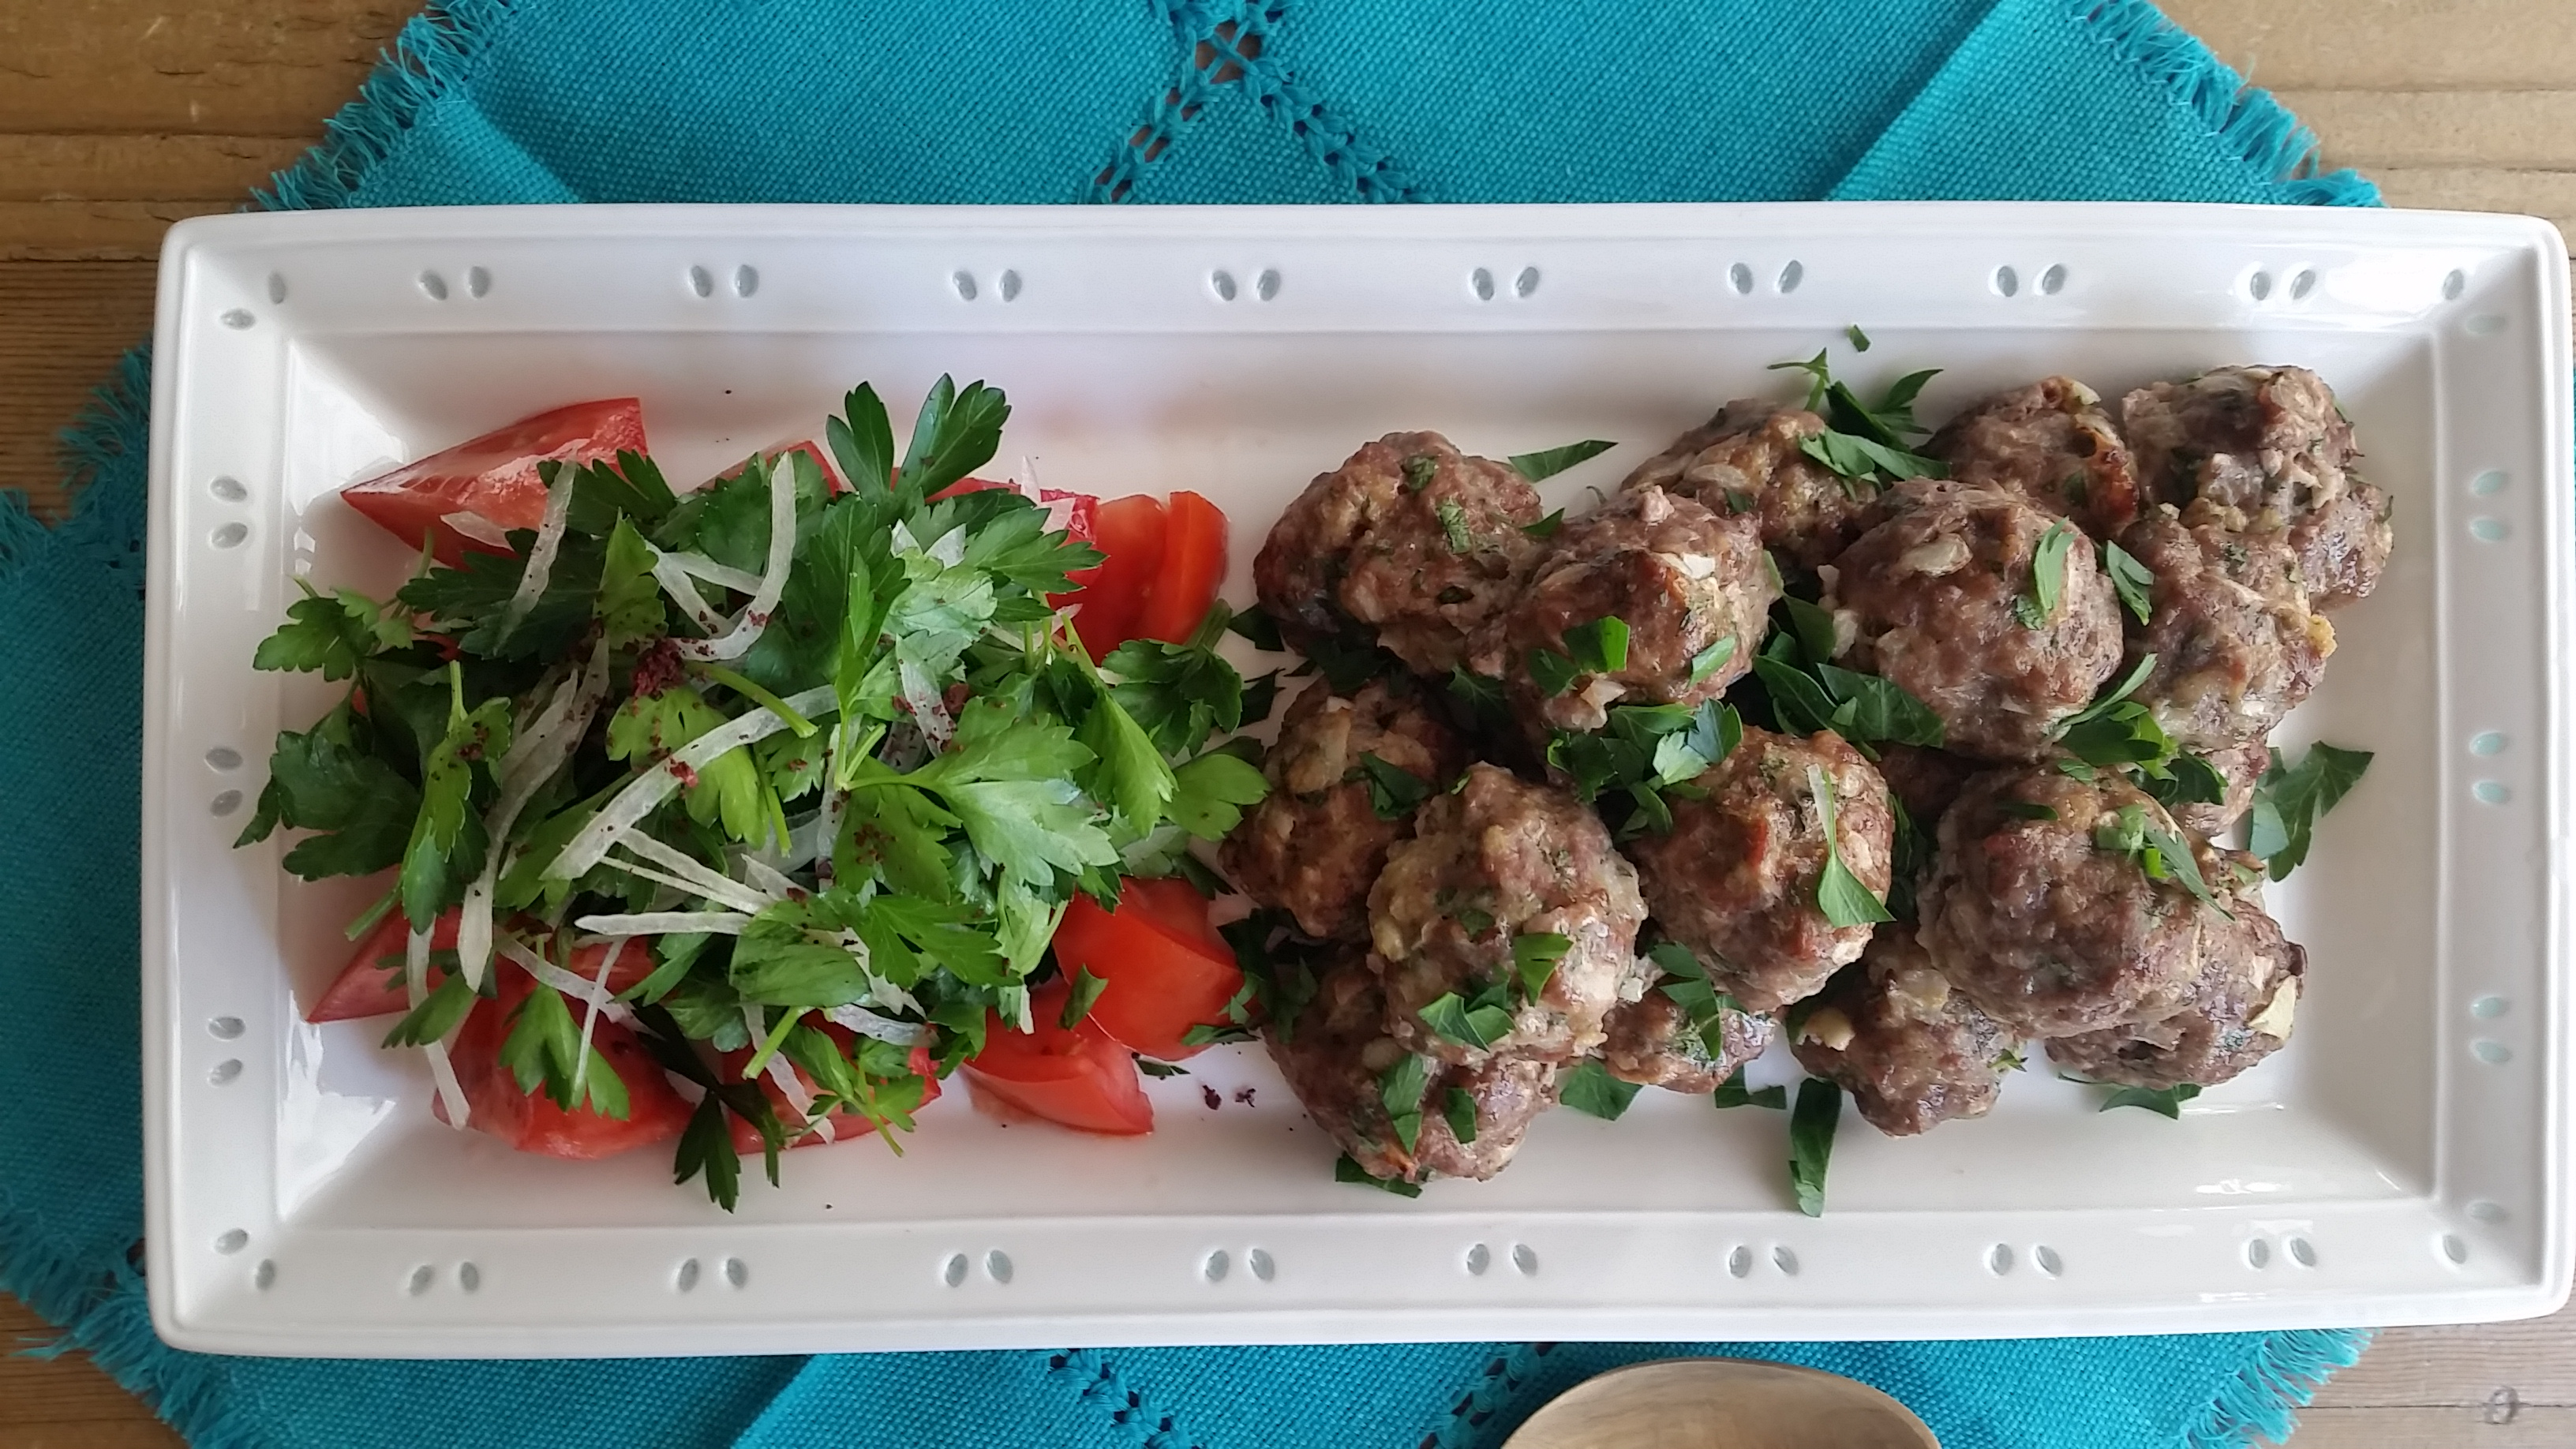 Mom's Meatball Recipe with Parsley and Onion Salad